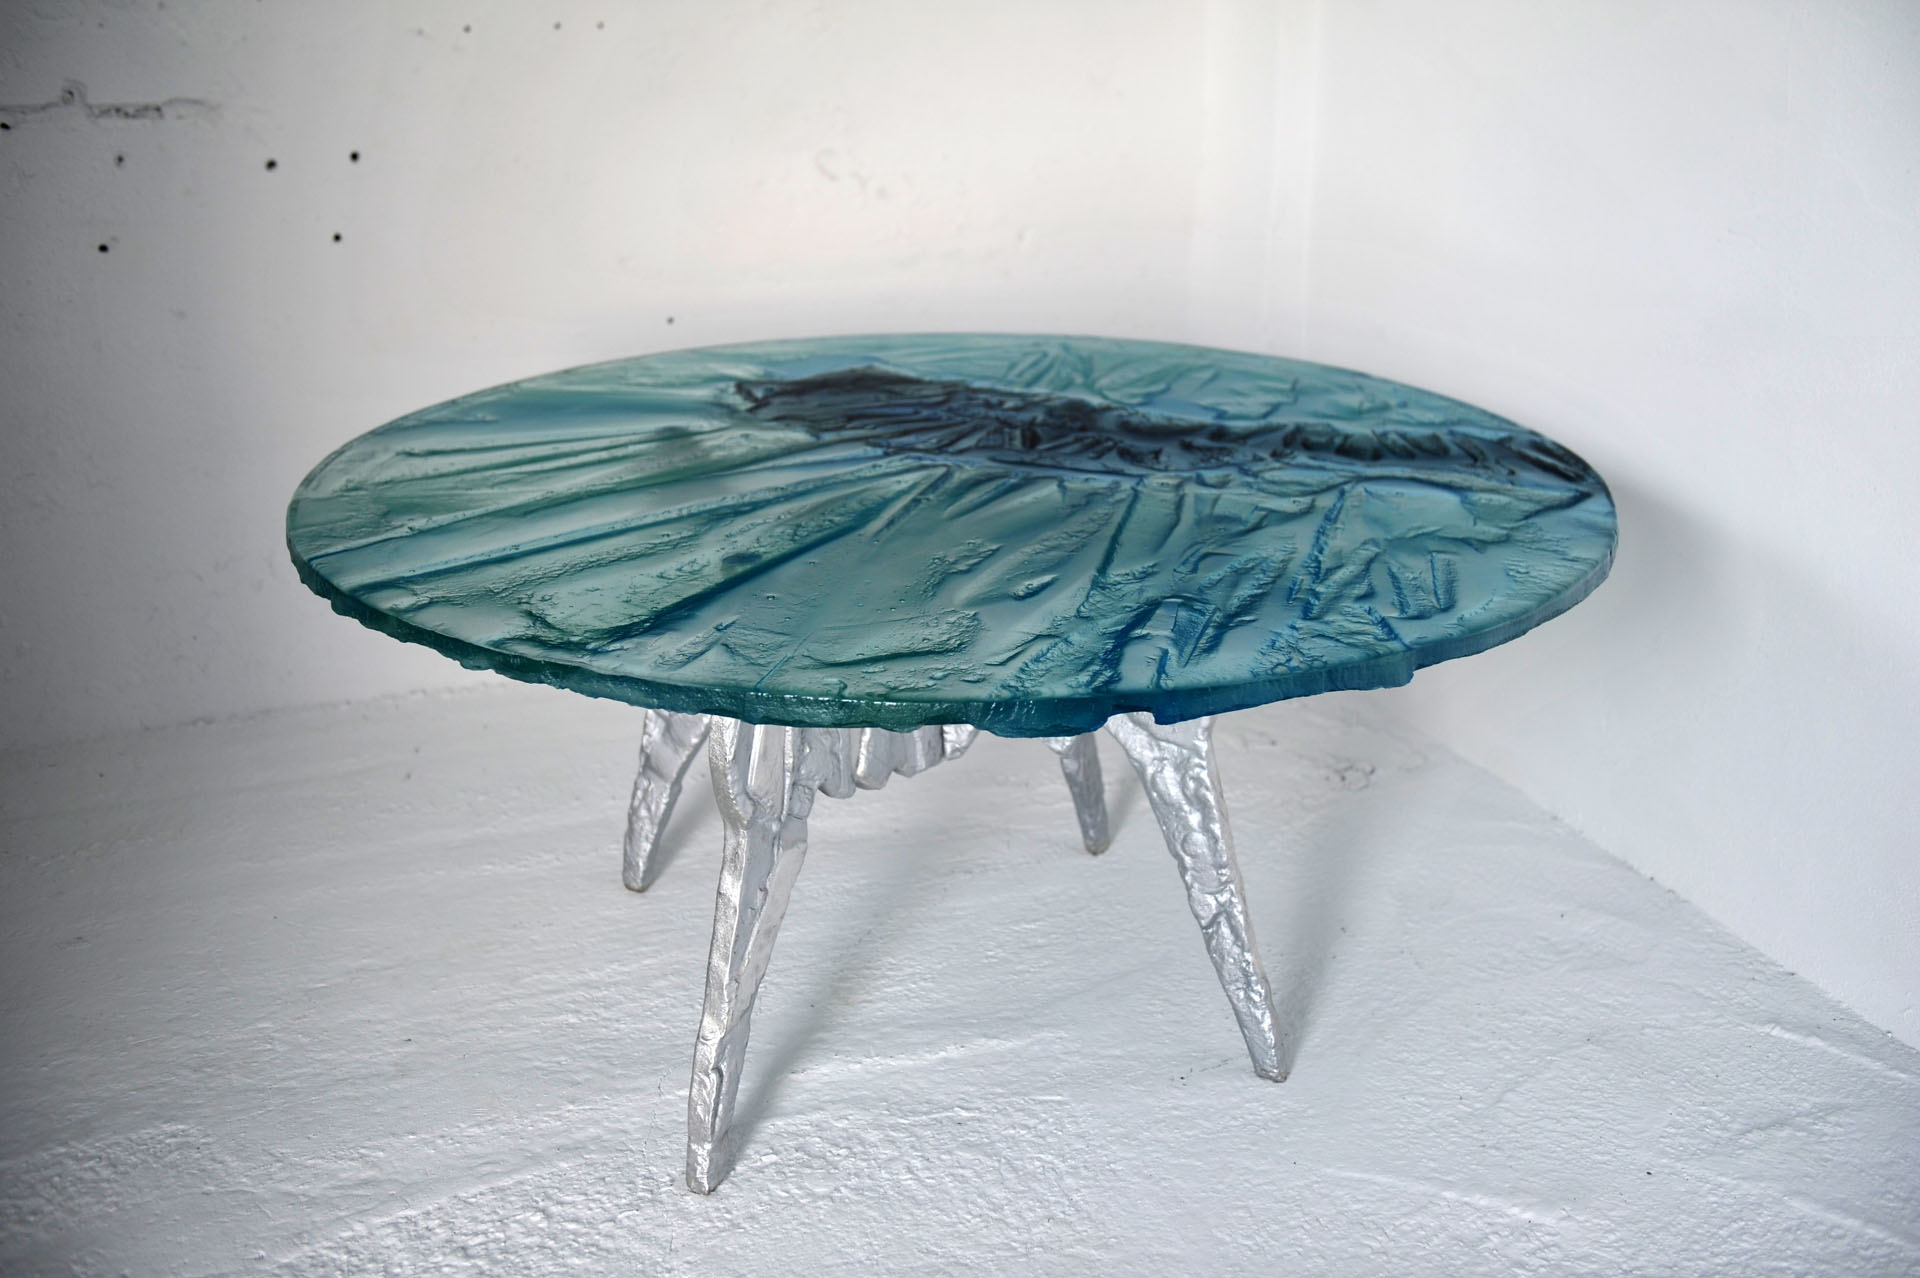 Archiglass Art Glass Table KOŁO 25412 Kaukaz